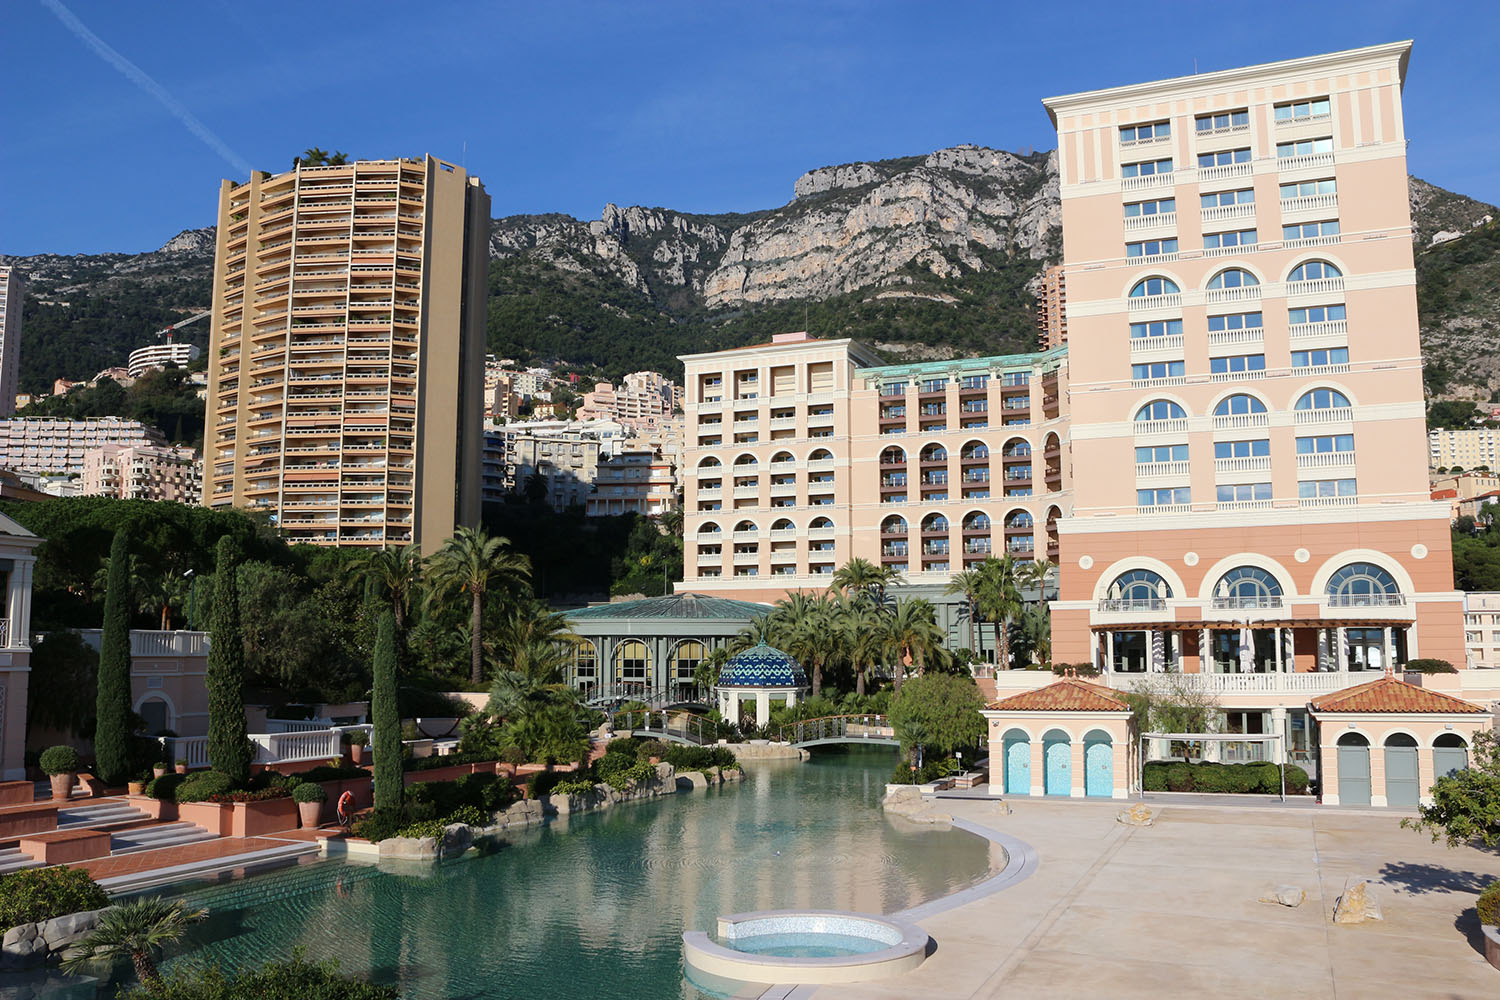 monte carlo bay hotel review hotels accommodation luxury travel diary. Black Bedroom Furniture Sets. Home Design Ideas